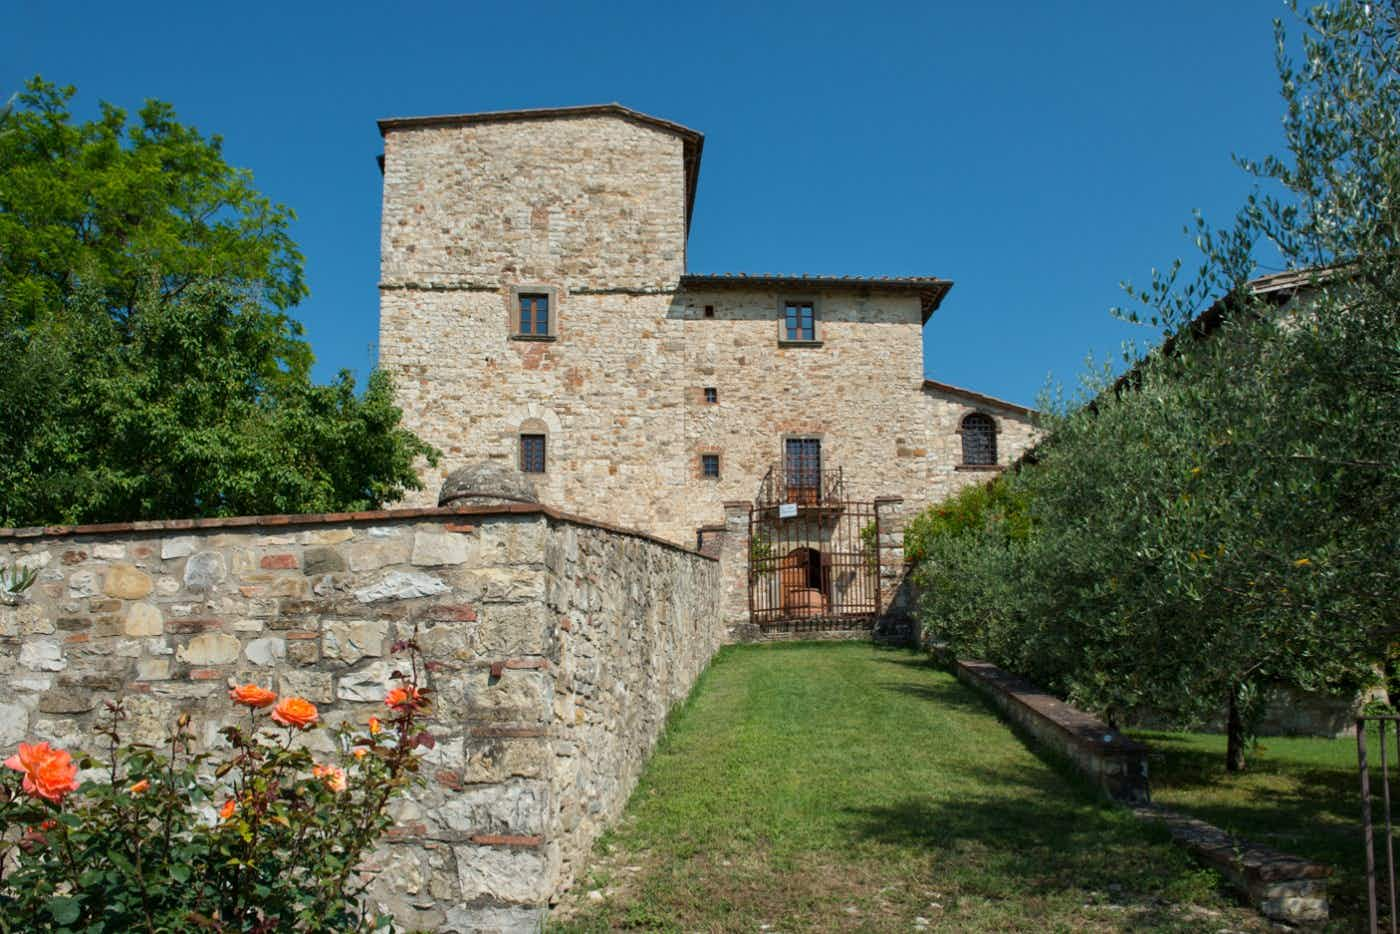 An idyllic Tuscan farmhouse once owned by Michelangelo is up for sale